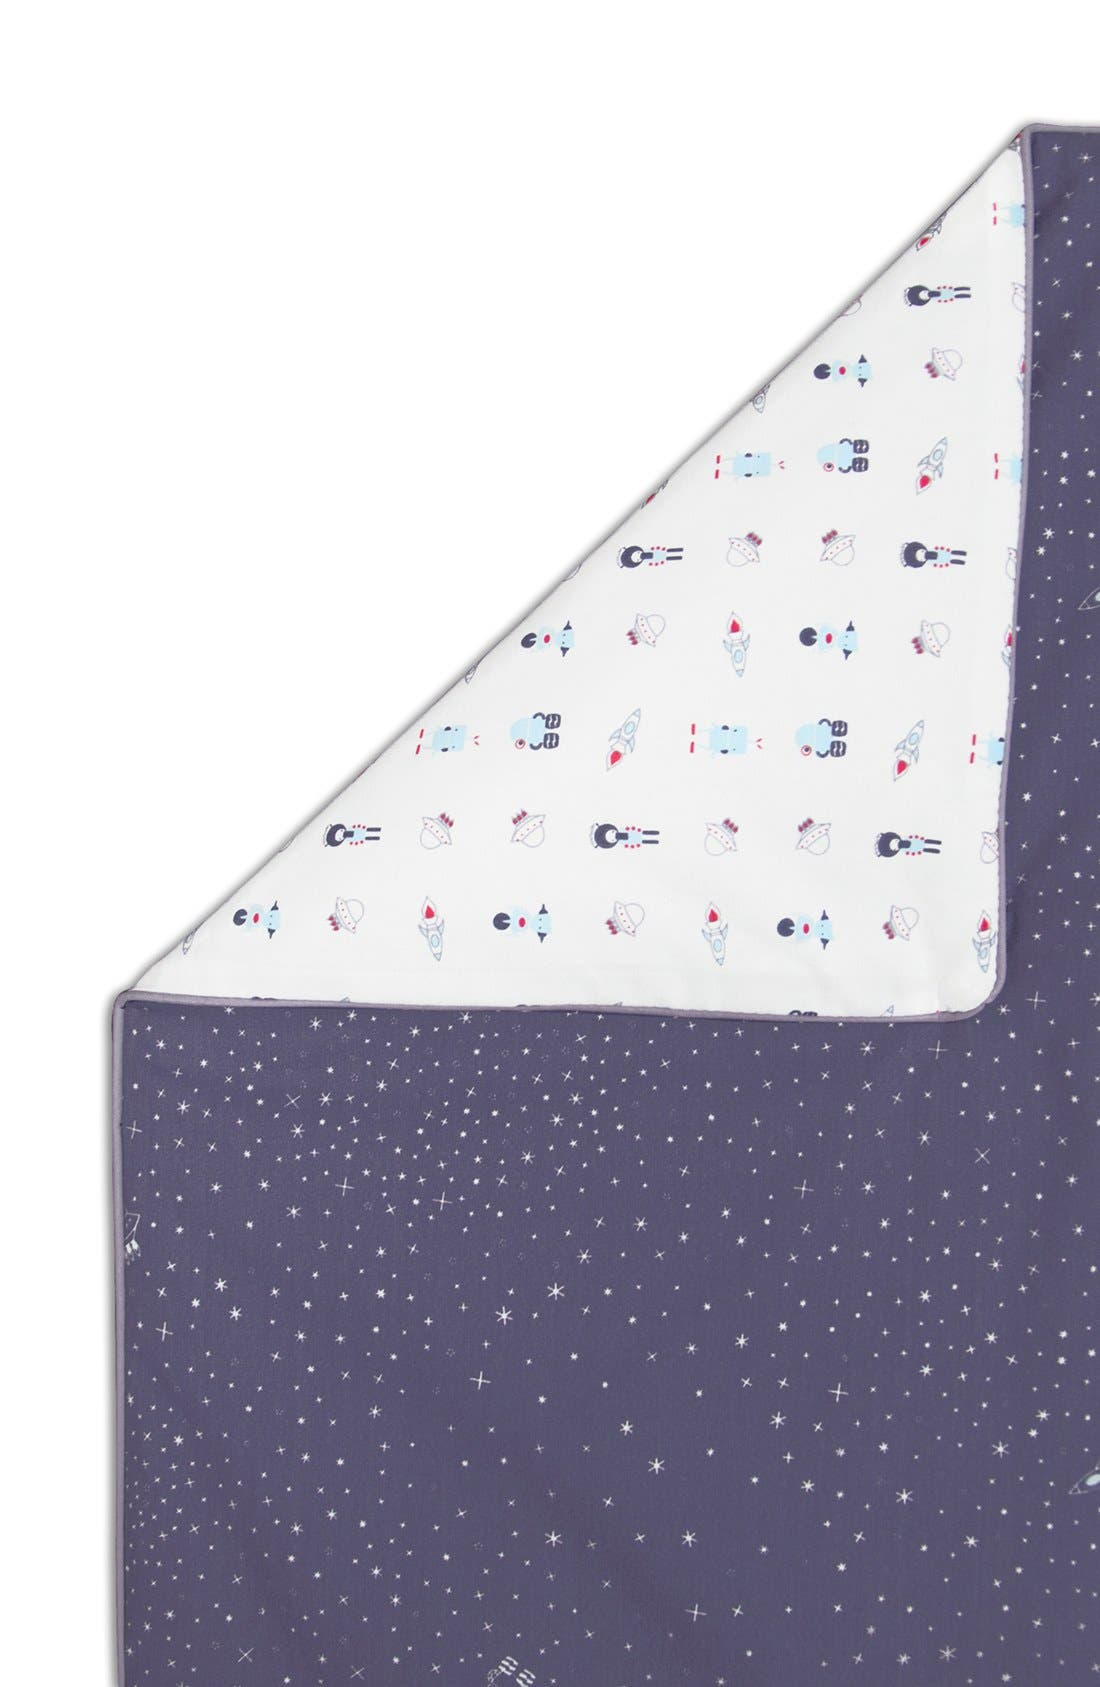 'Galaxy' Crib Sheet, Crib Skirt, Changing Pad Cover, Play Blanket & Wall Decals,                             Alternate thumbnail 3, color,                             020